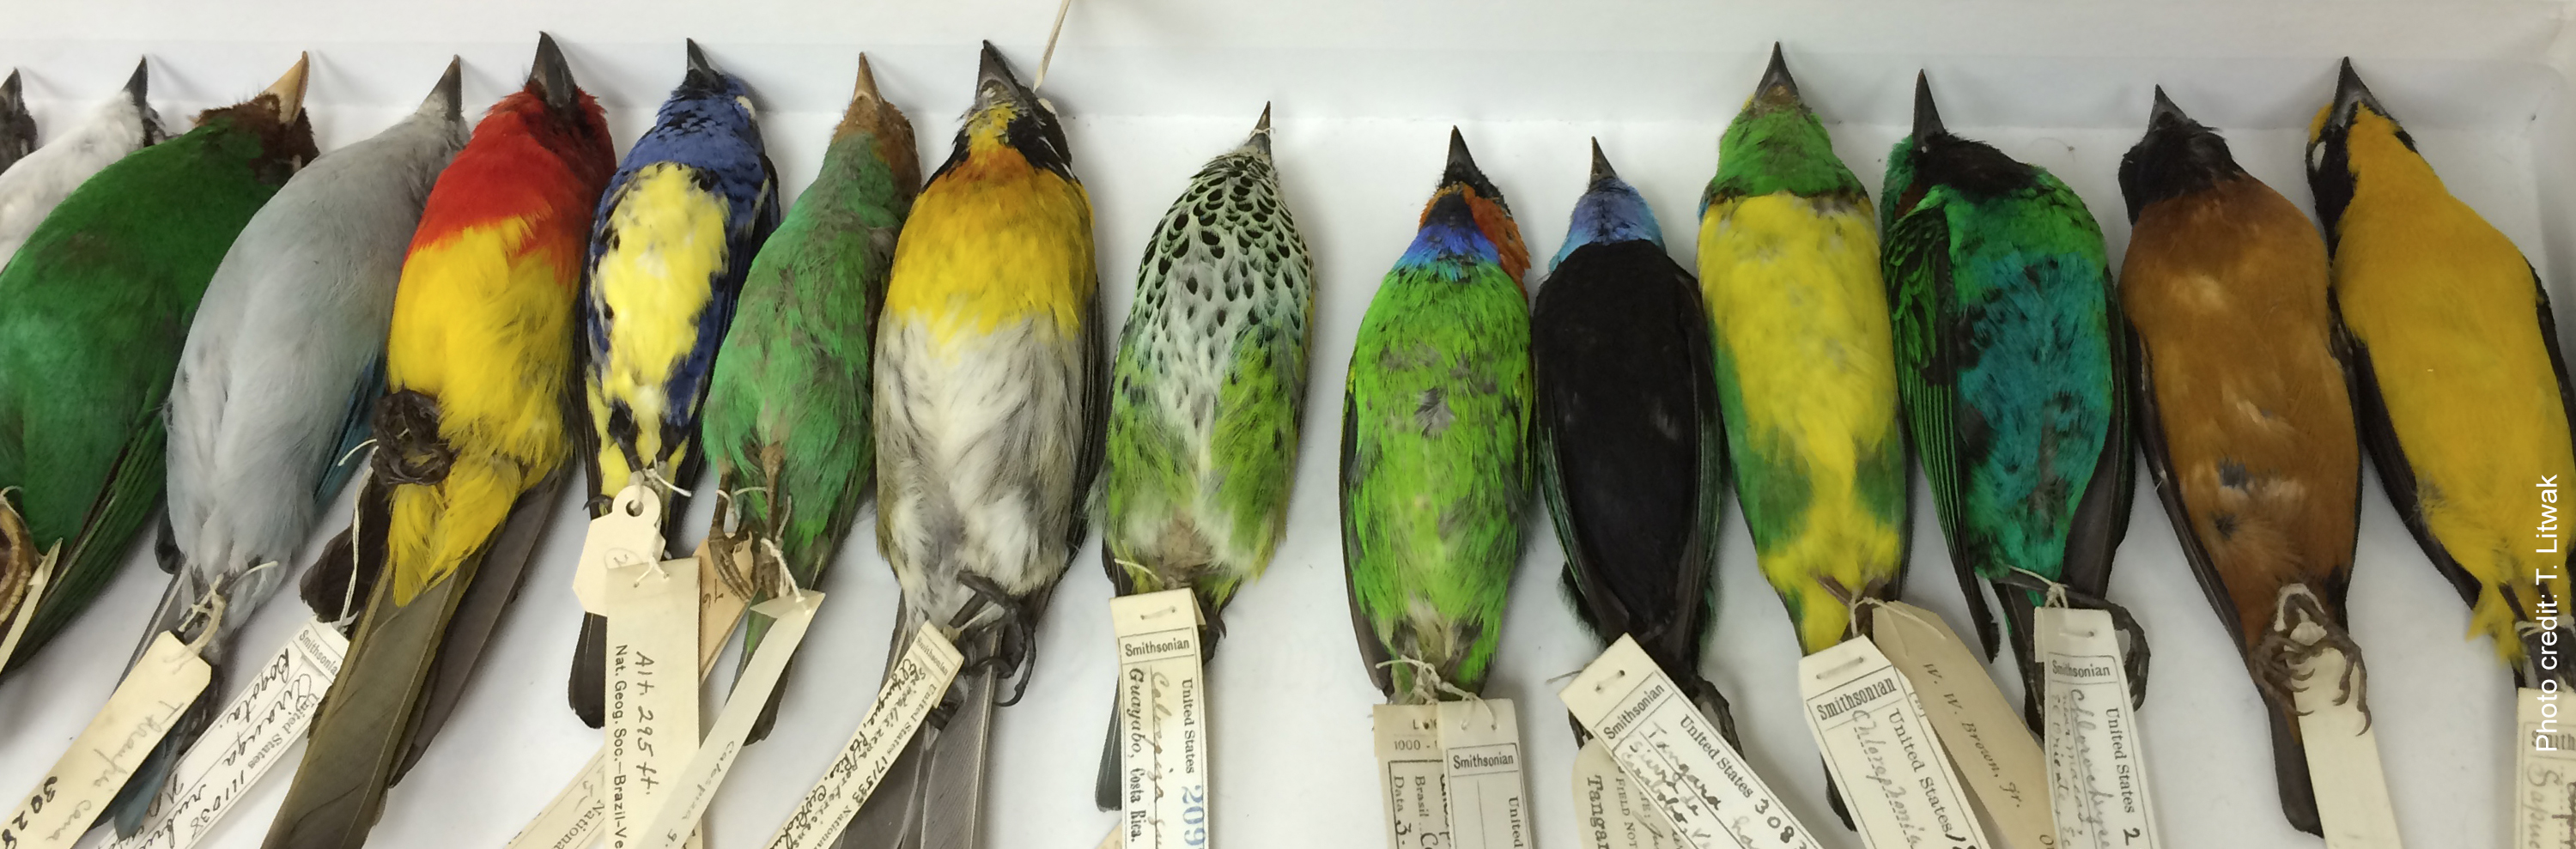 2018 GNSI Conf Registration Teaser Ornithology Collection at NMNH by Taina Litwak